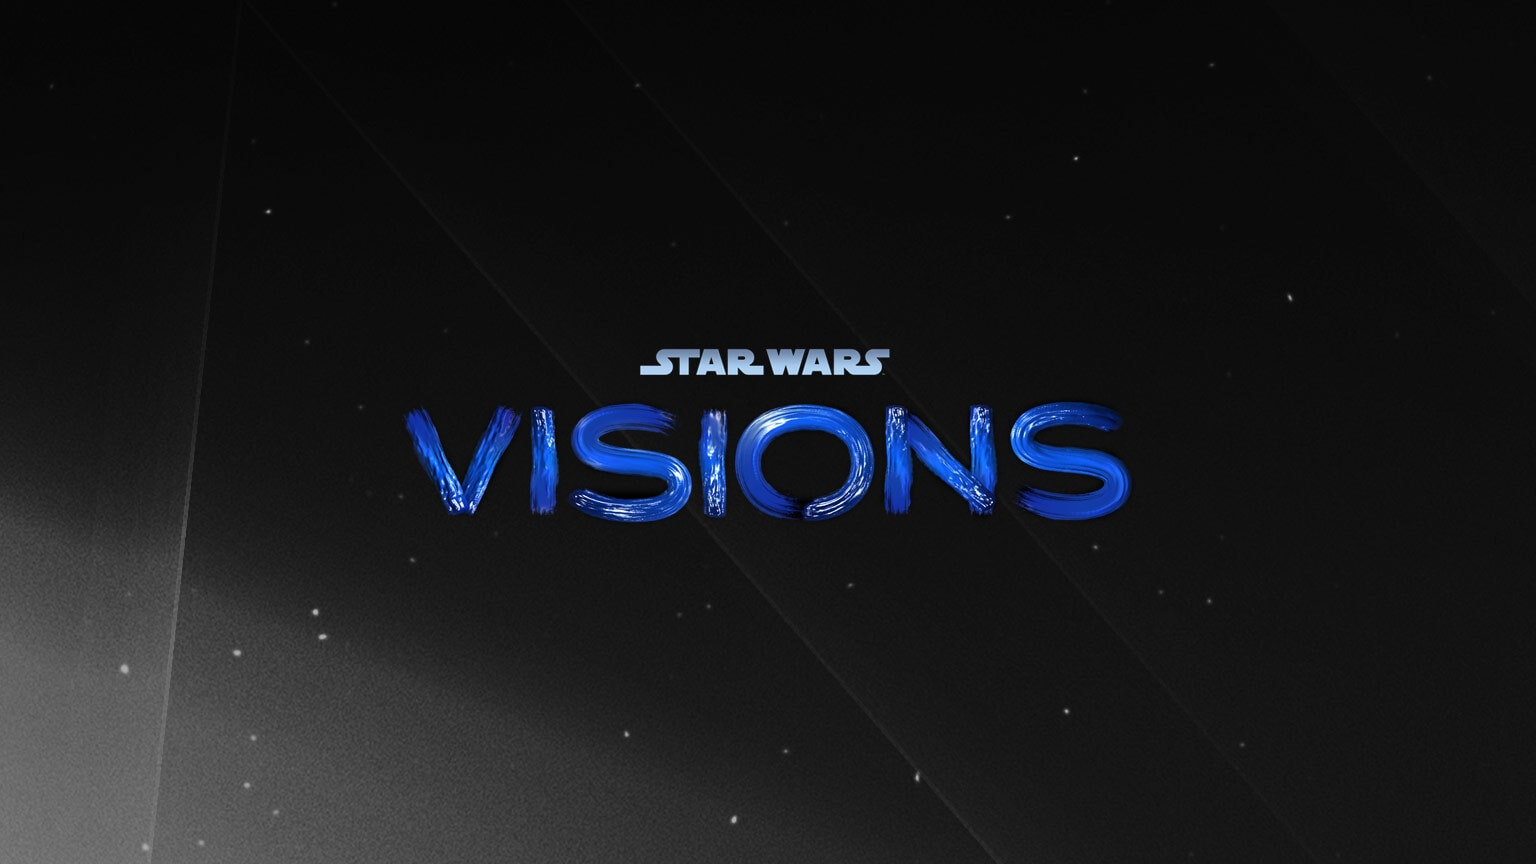 Anime Expo Lite: 20 Things We Learned from the Star Wars: Visions Panel